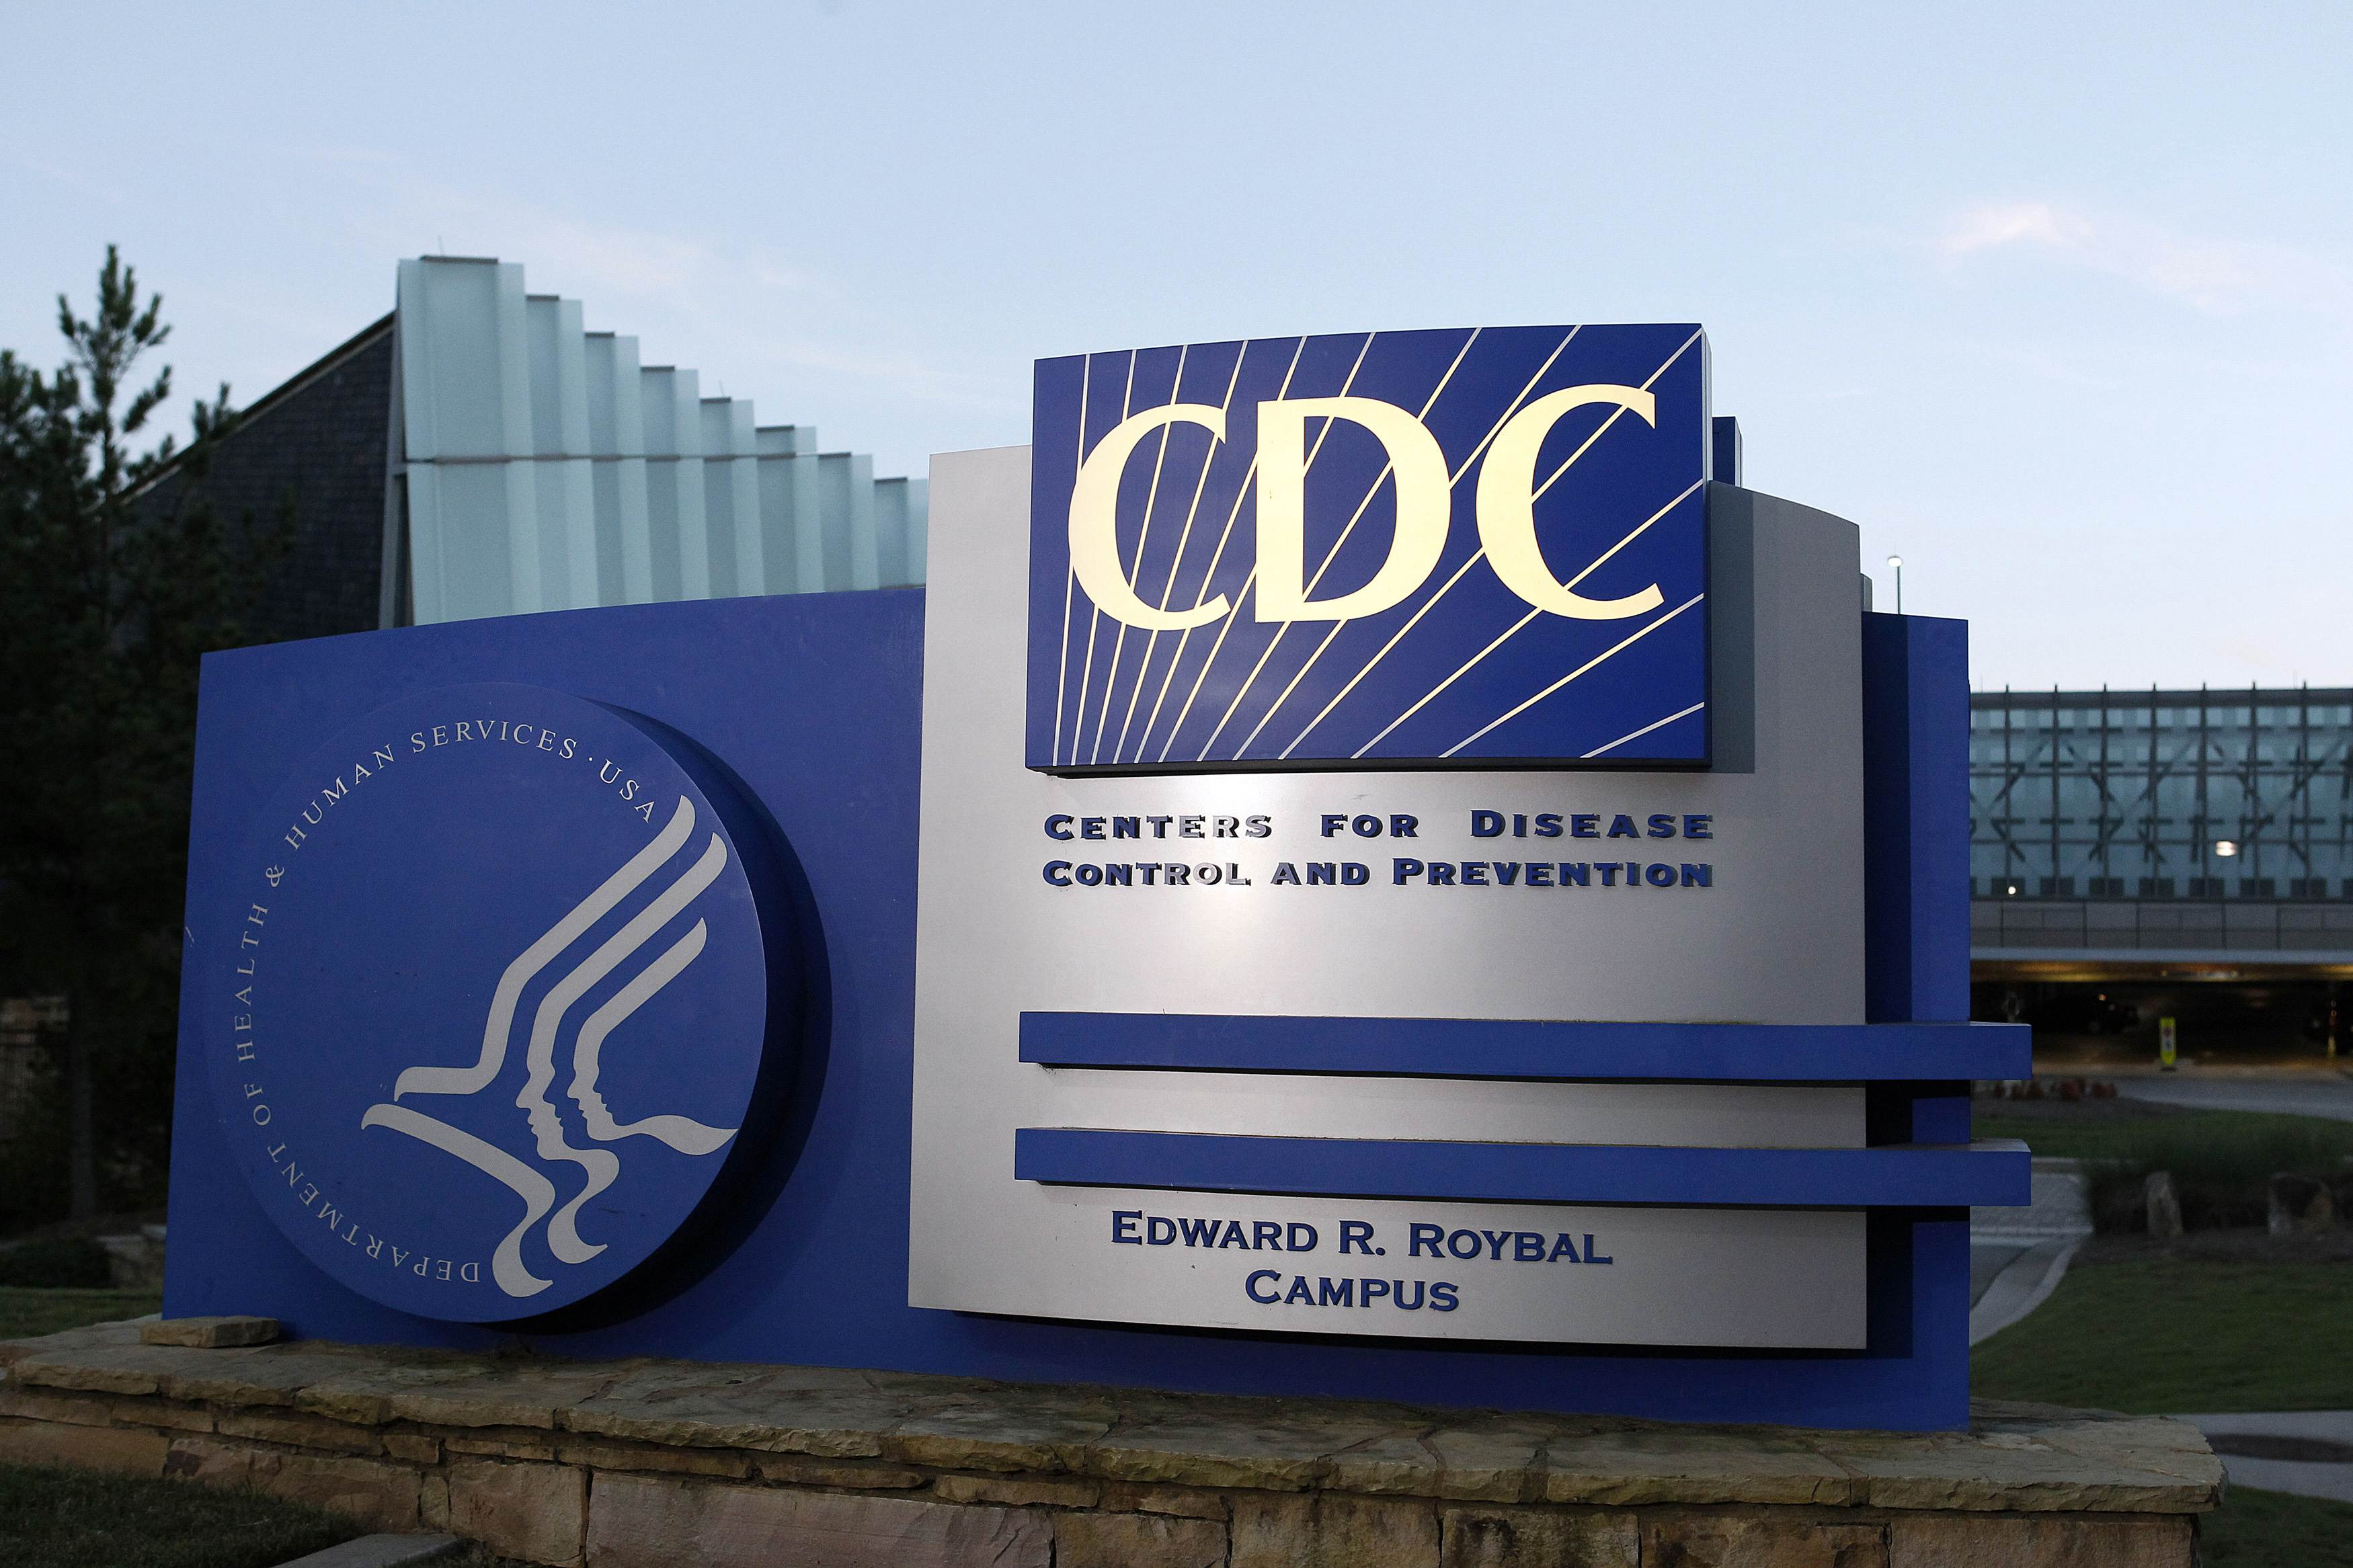 A general view of the Centers for Disease Control and Prevention (CDC) headquarters is seen in Atlanta, Georgia.